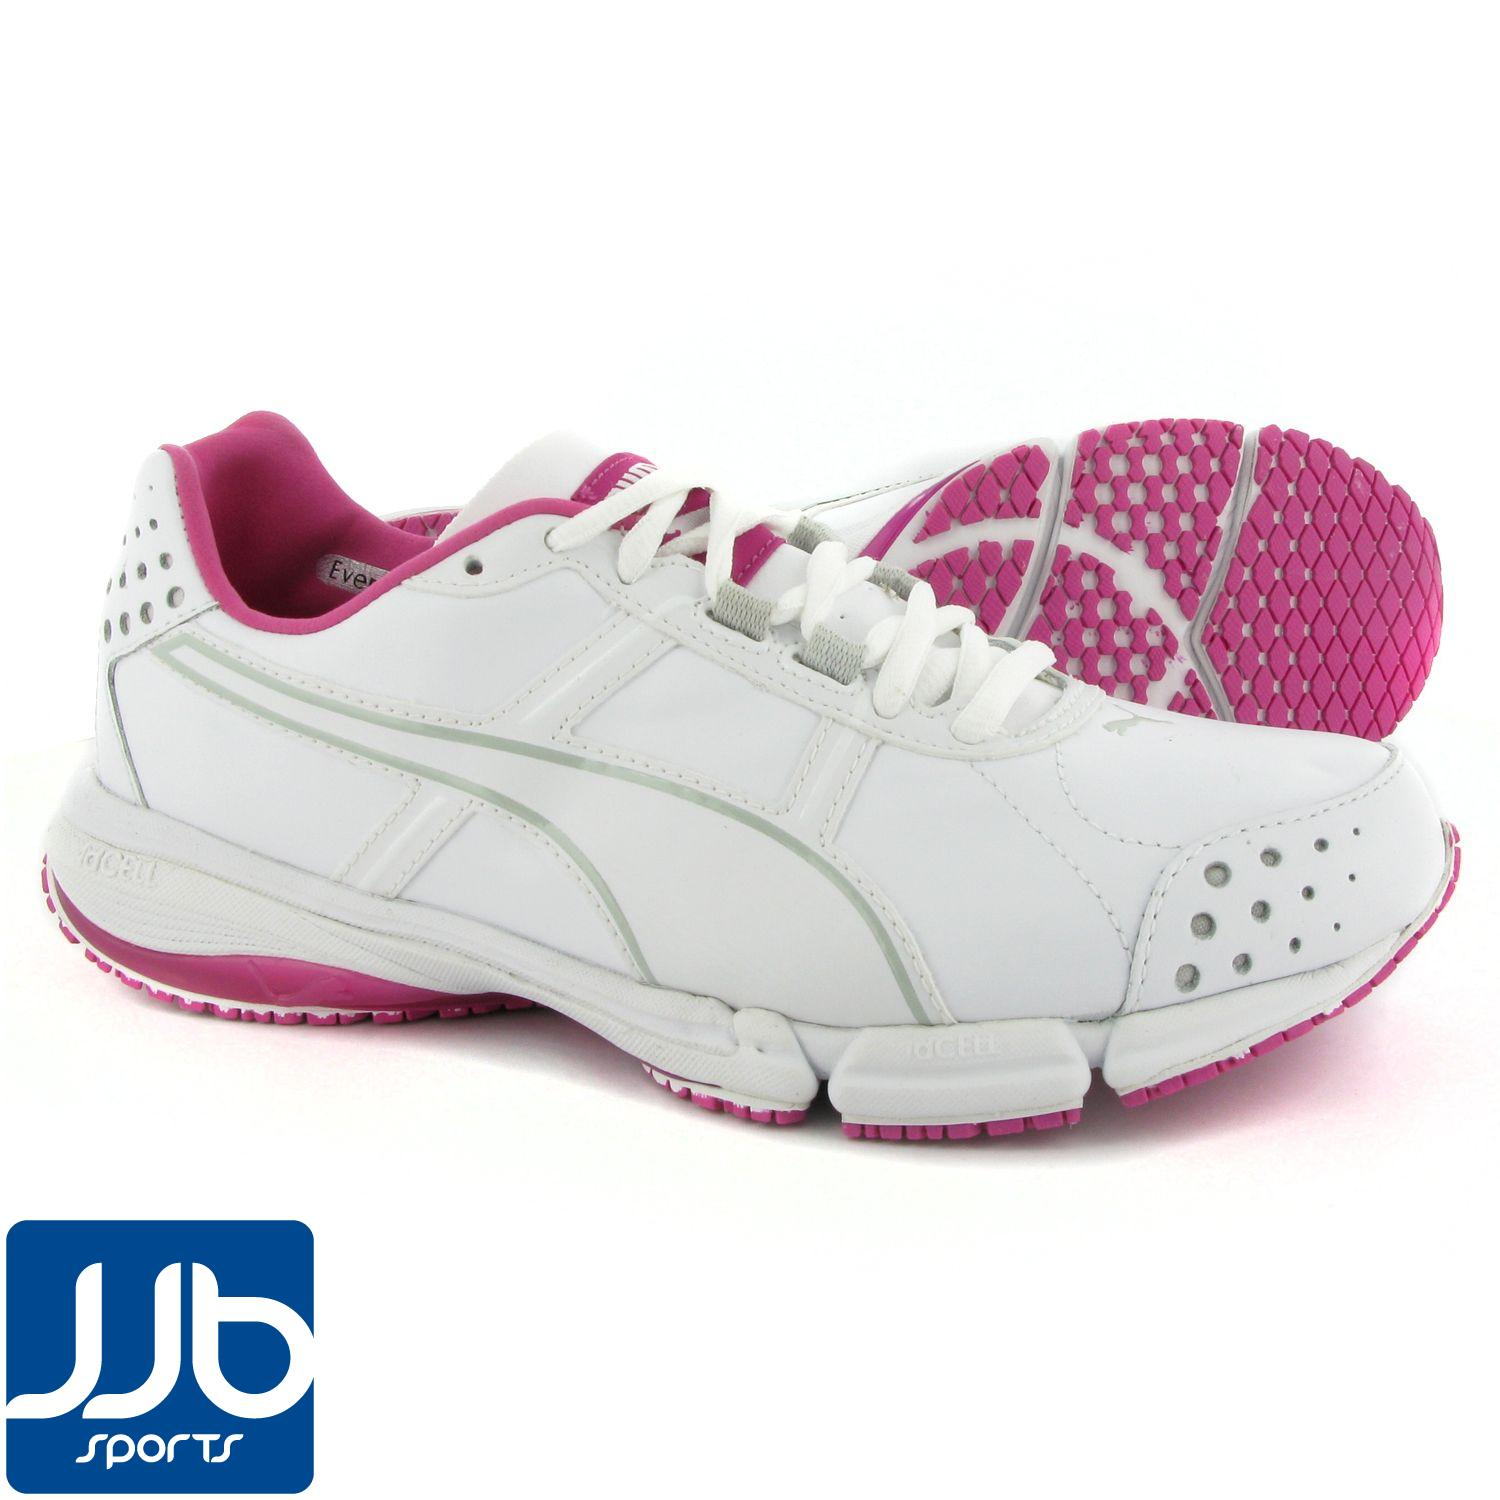 Puma-TrainLite-XT-Mesh-Womens-Toning-Trainers-White-Raspberry